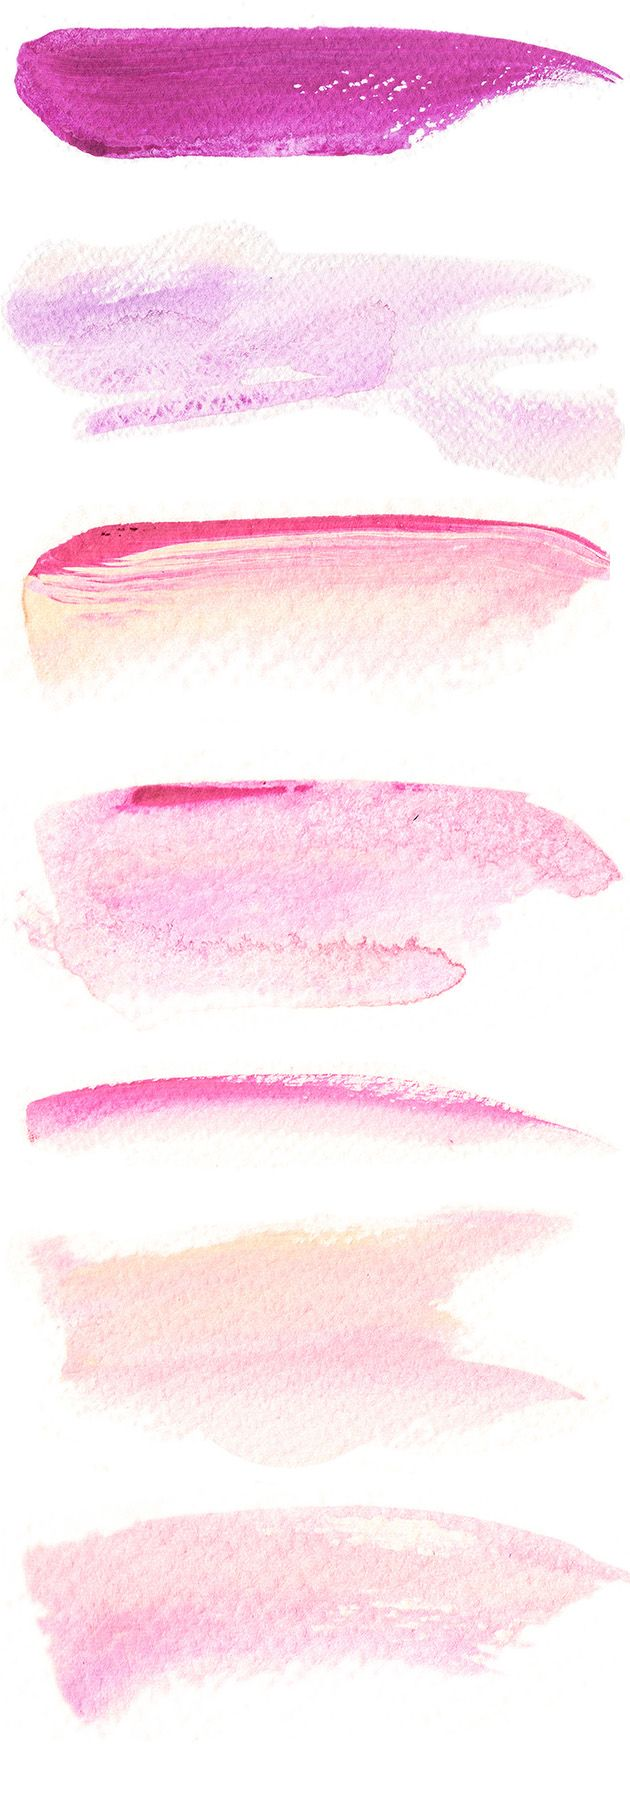 Free Downloadable Watercolor Brush Strokes Graphic Design